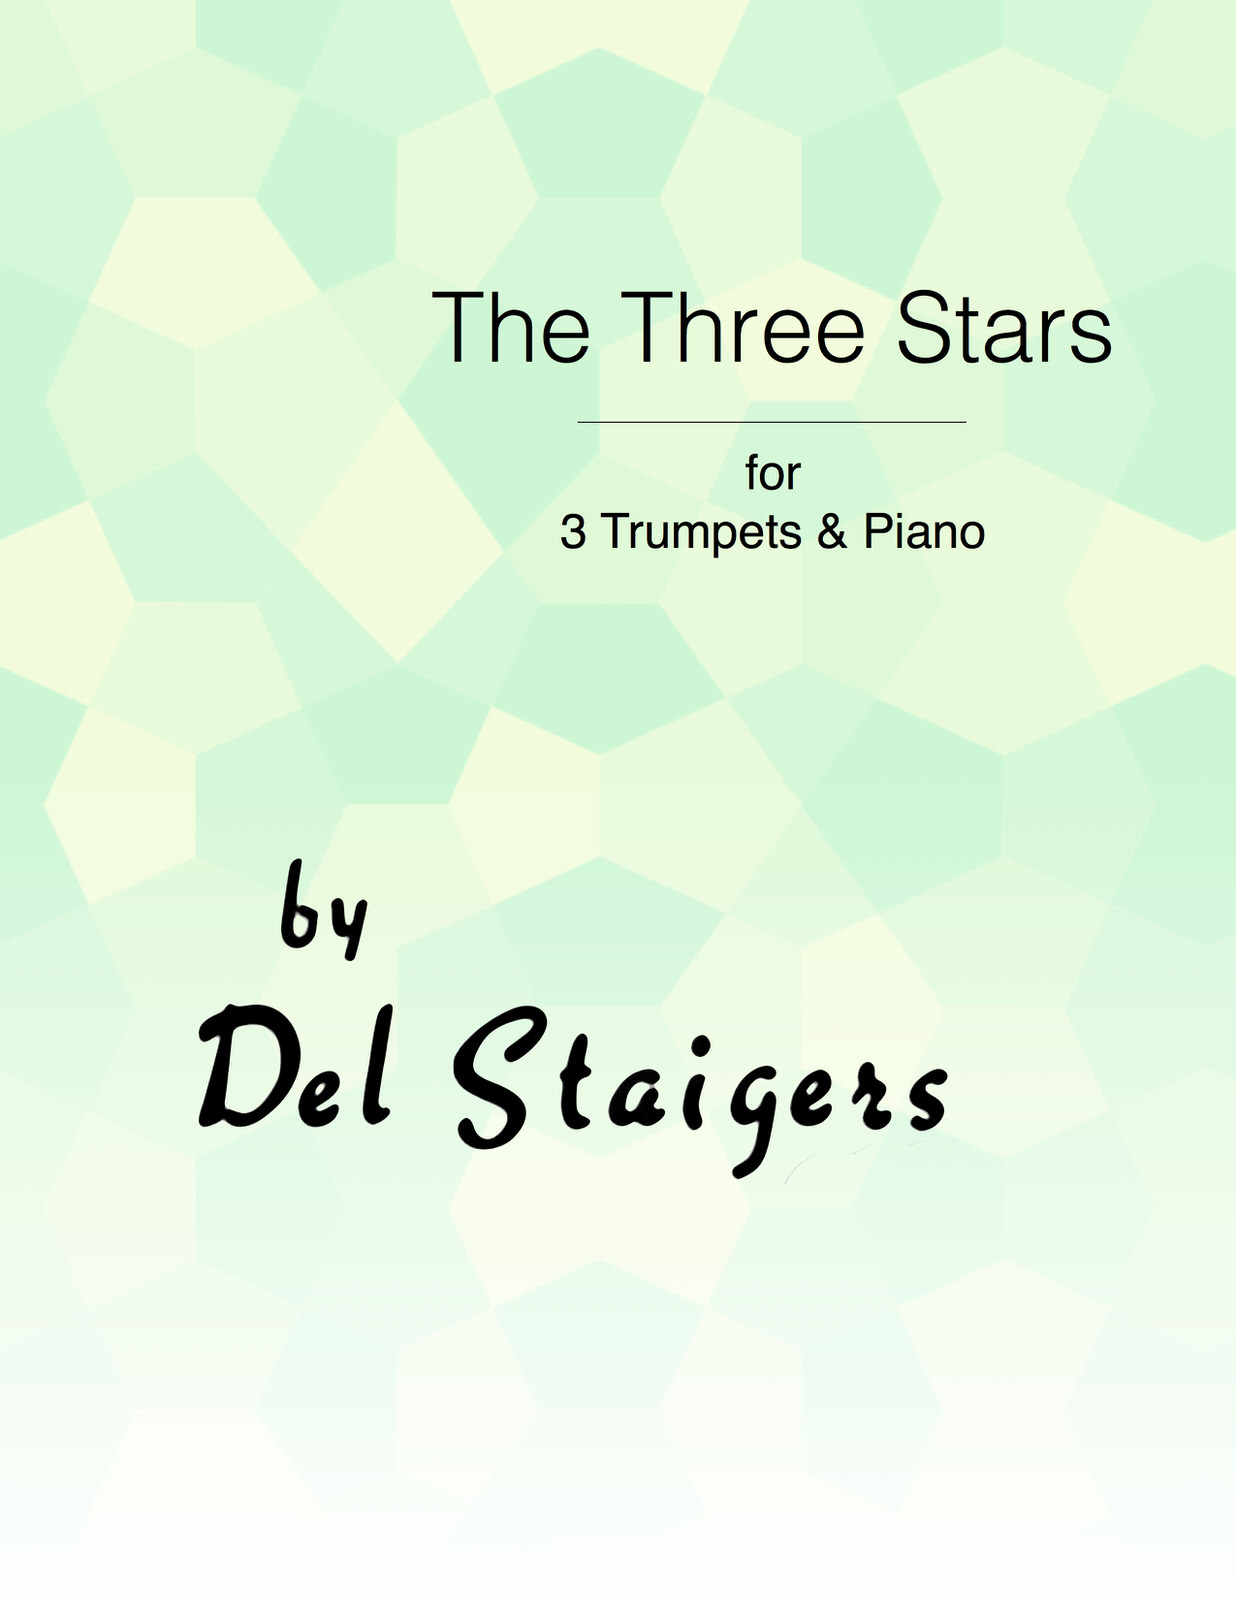 Staigers, The Three Stars Letter